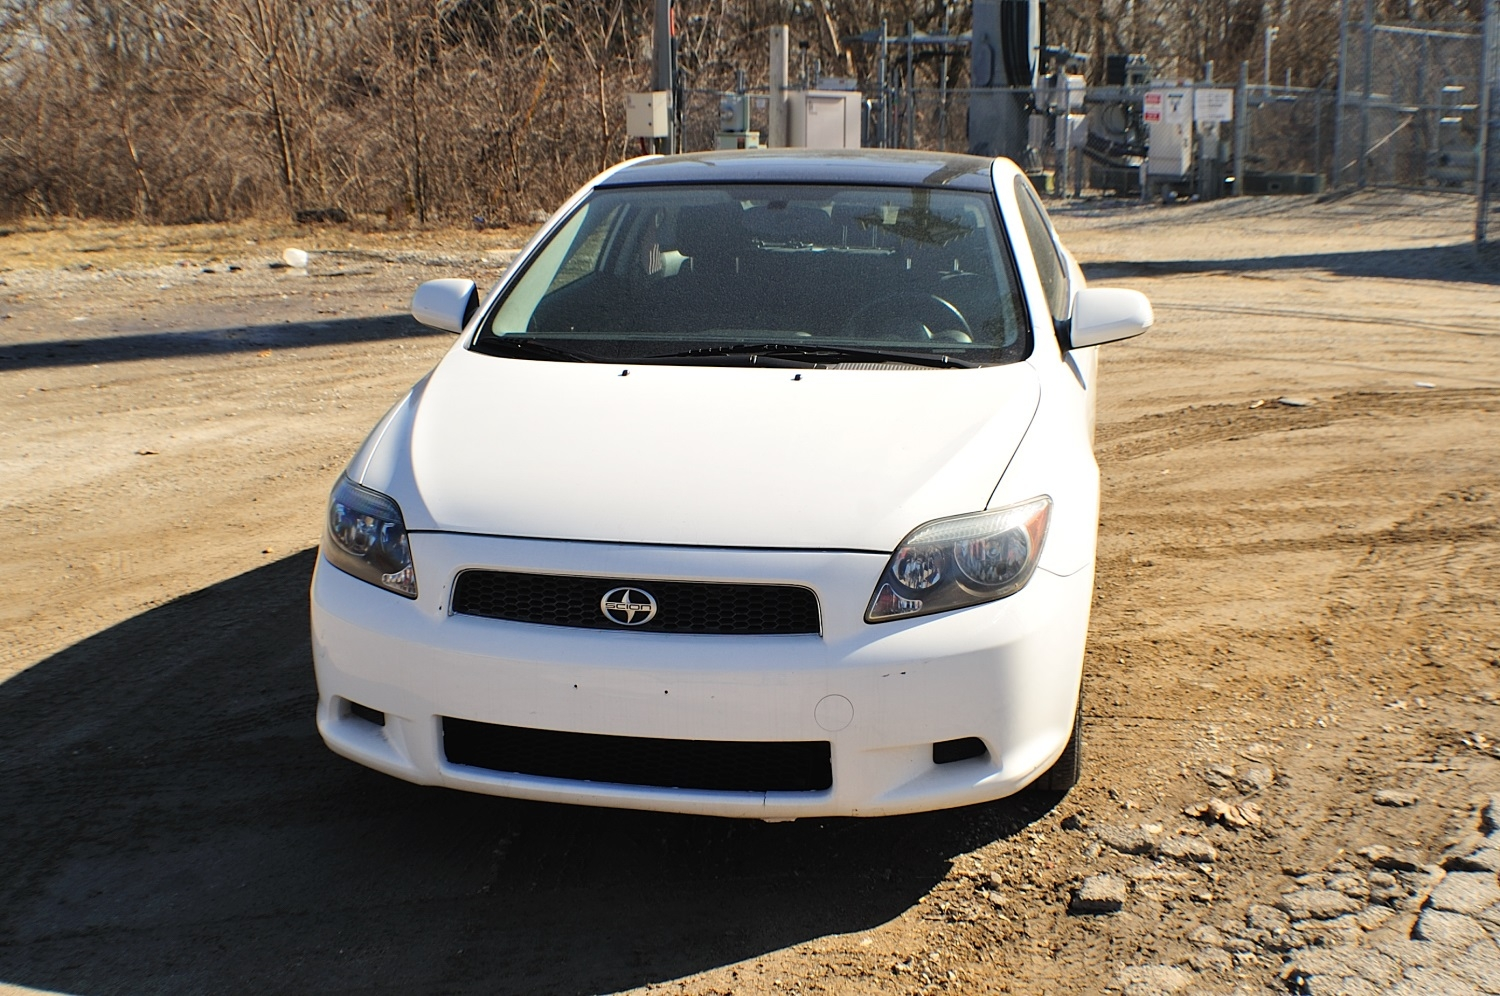 2006 Scion TC White Coupe Used Car Sale Gurnee Kenosha Mchenry Chicago Illinois